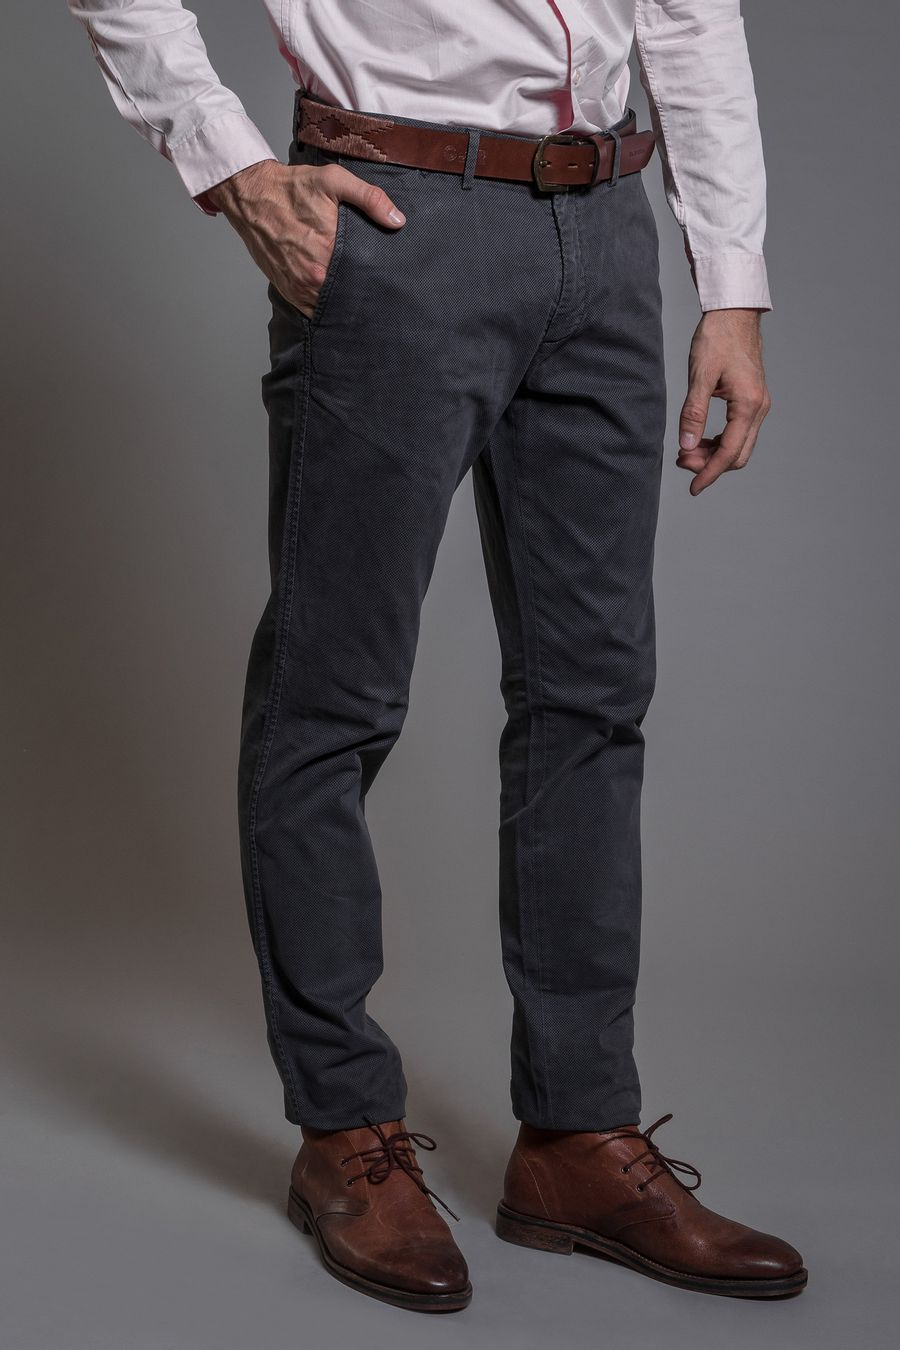 PANTALON-MICROPRINT-PAULO